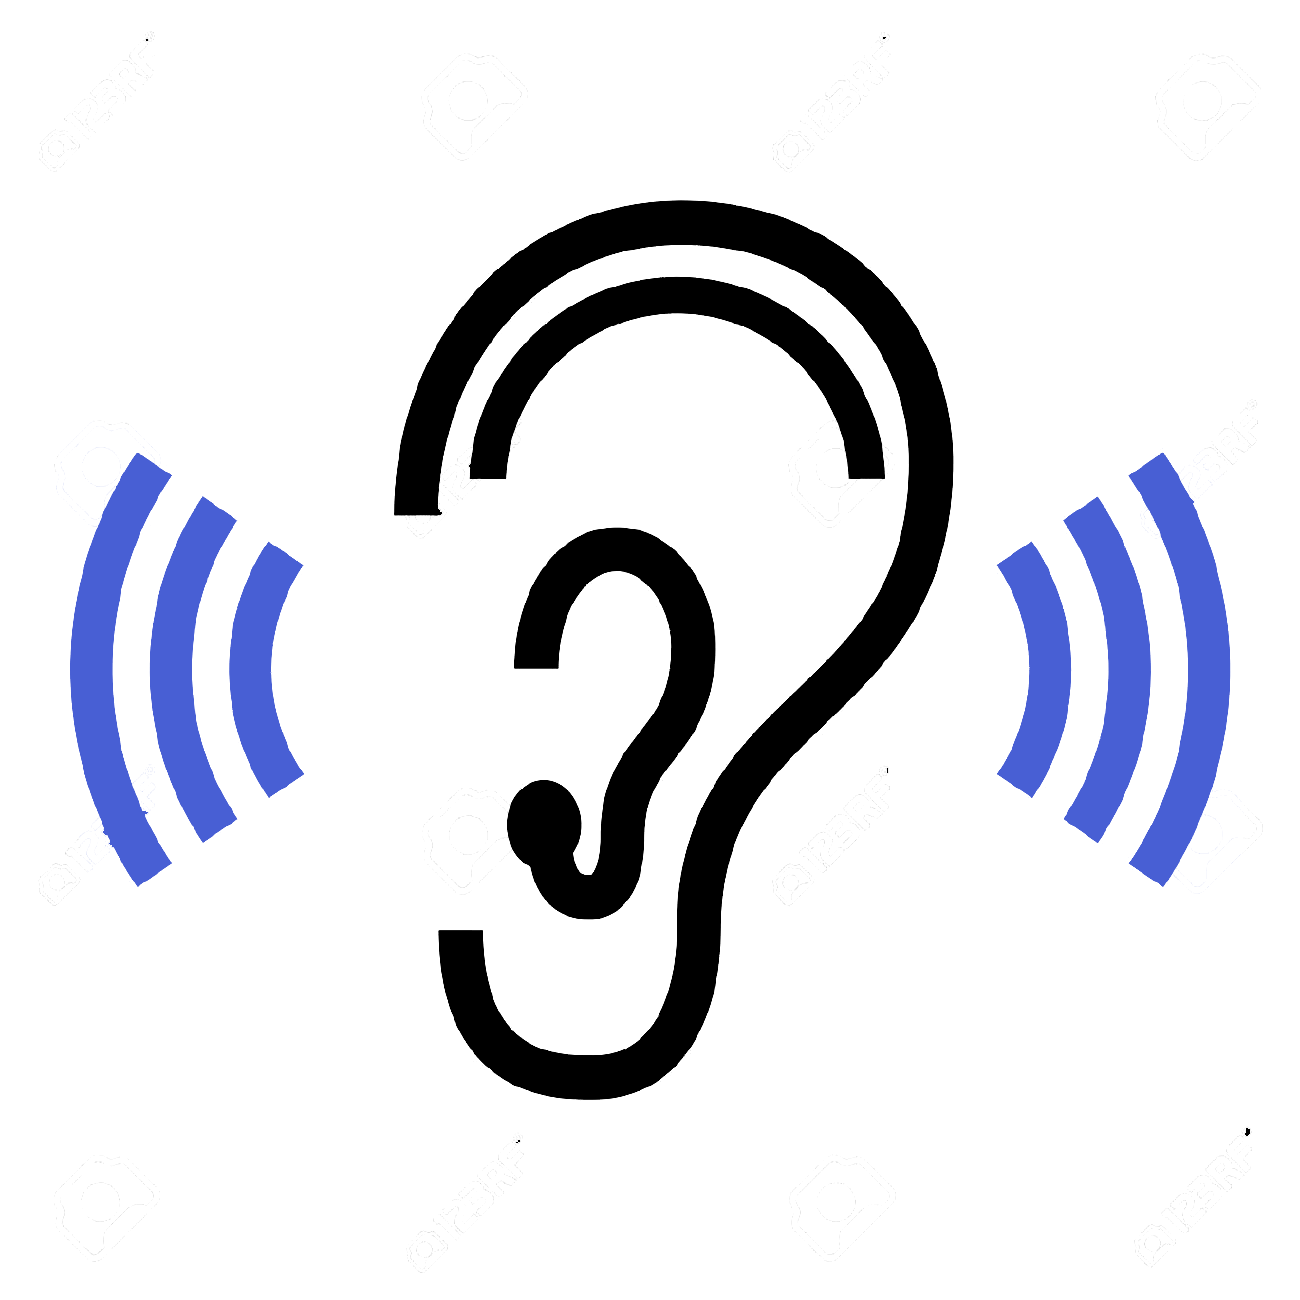 Icon of an Ear with radio waves standing for Call to listen to